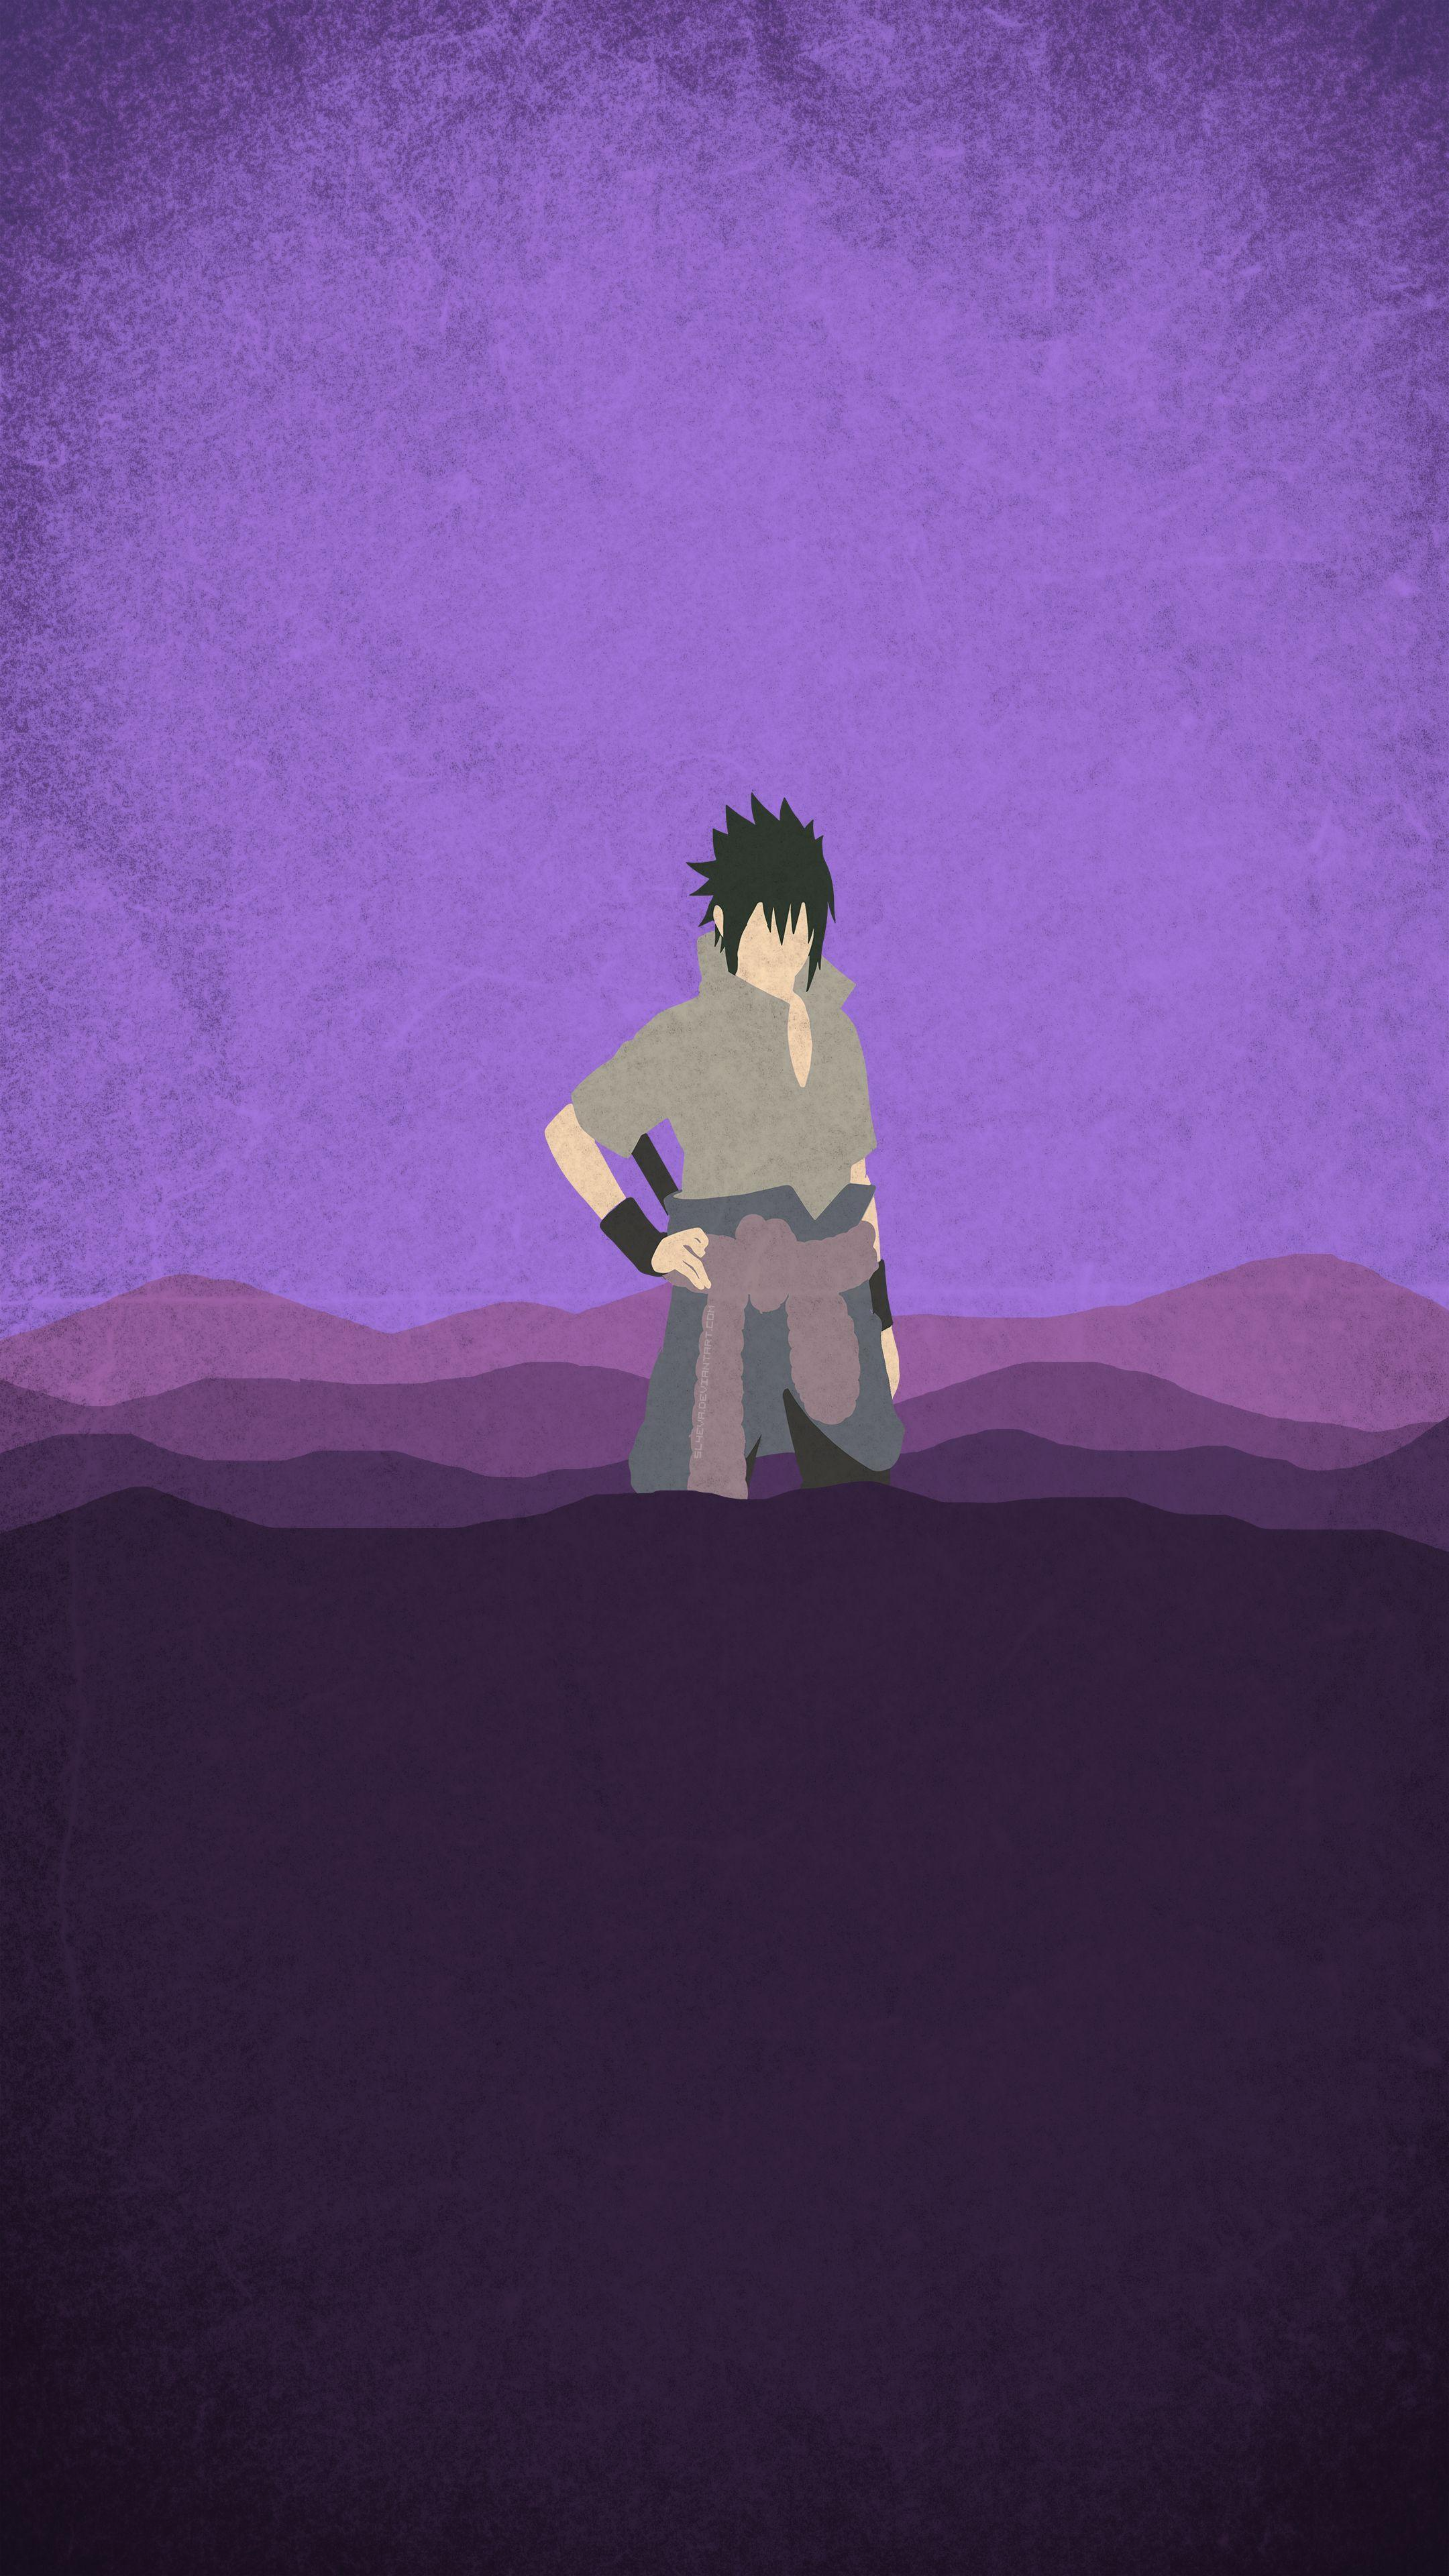 Naruto Shippuden. Cell Phone Wallpapers 2017 - Wallpaper Cave